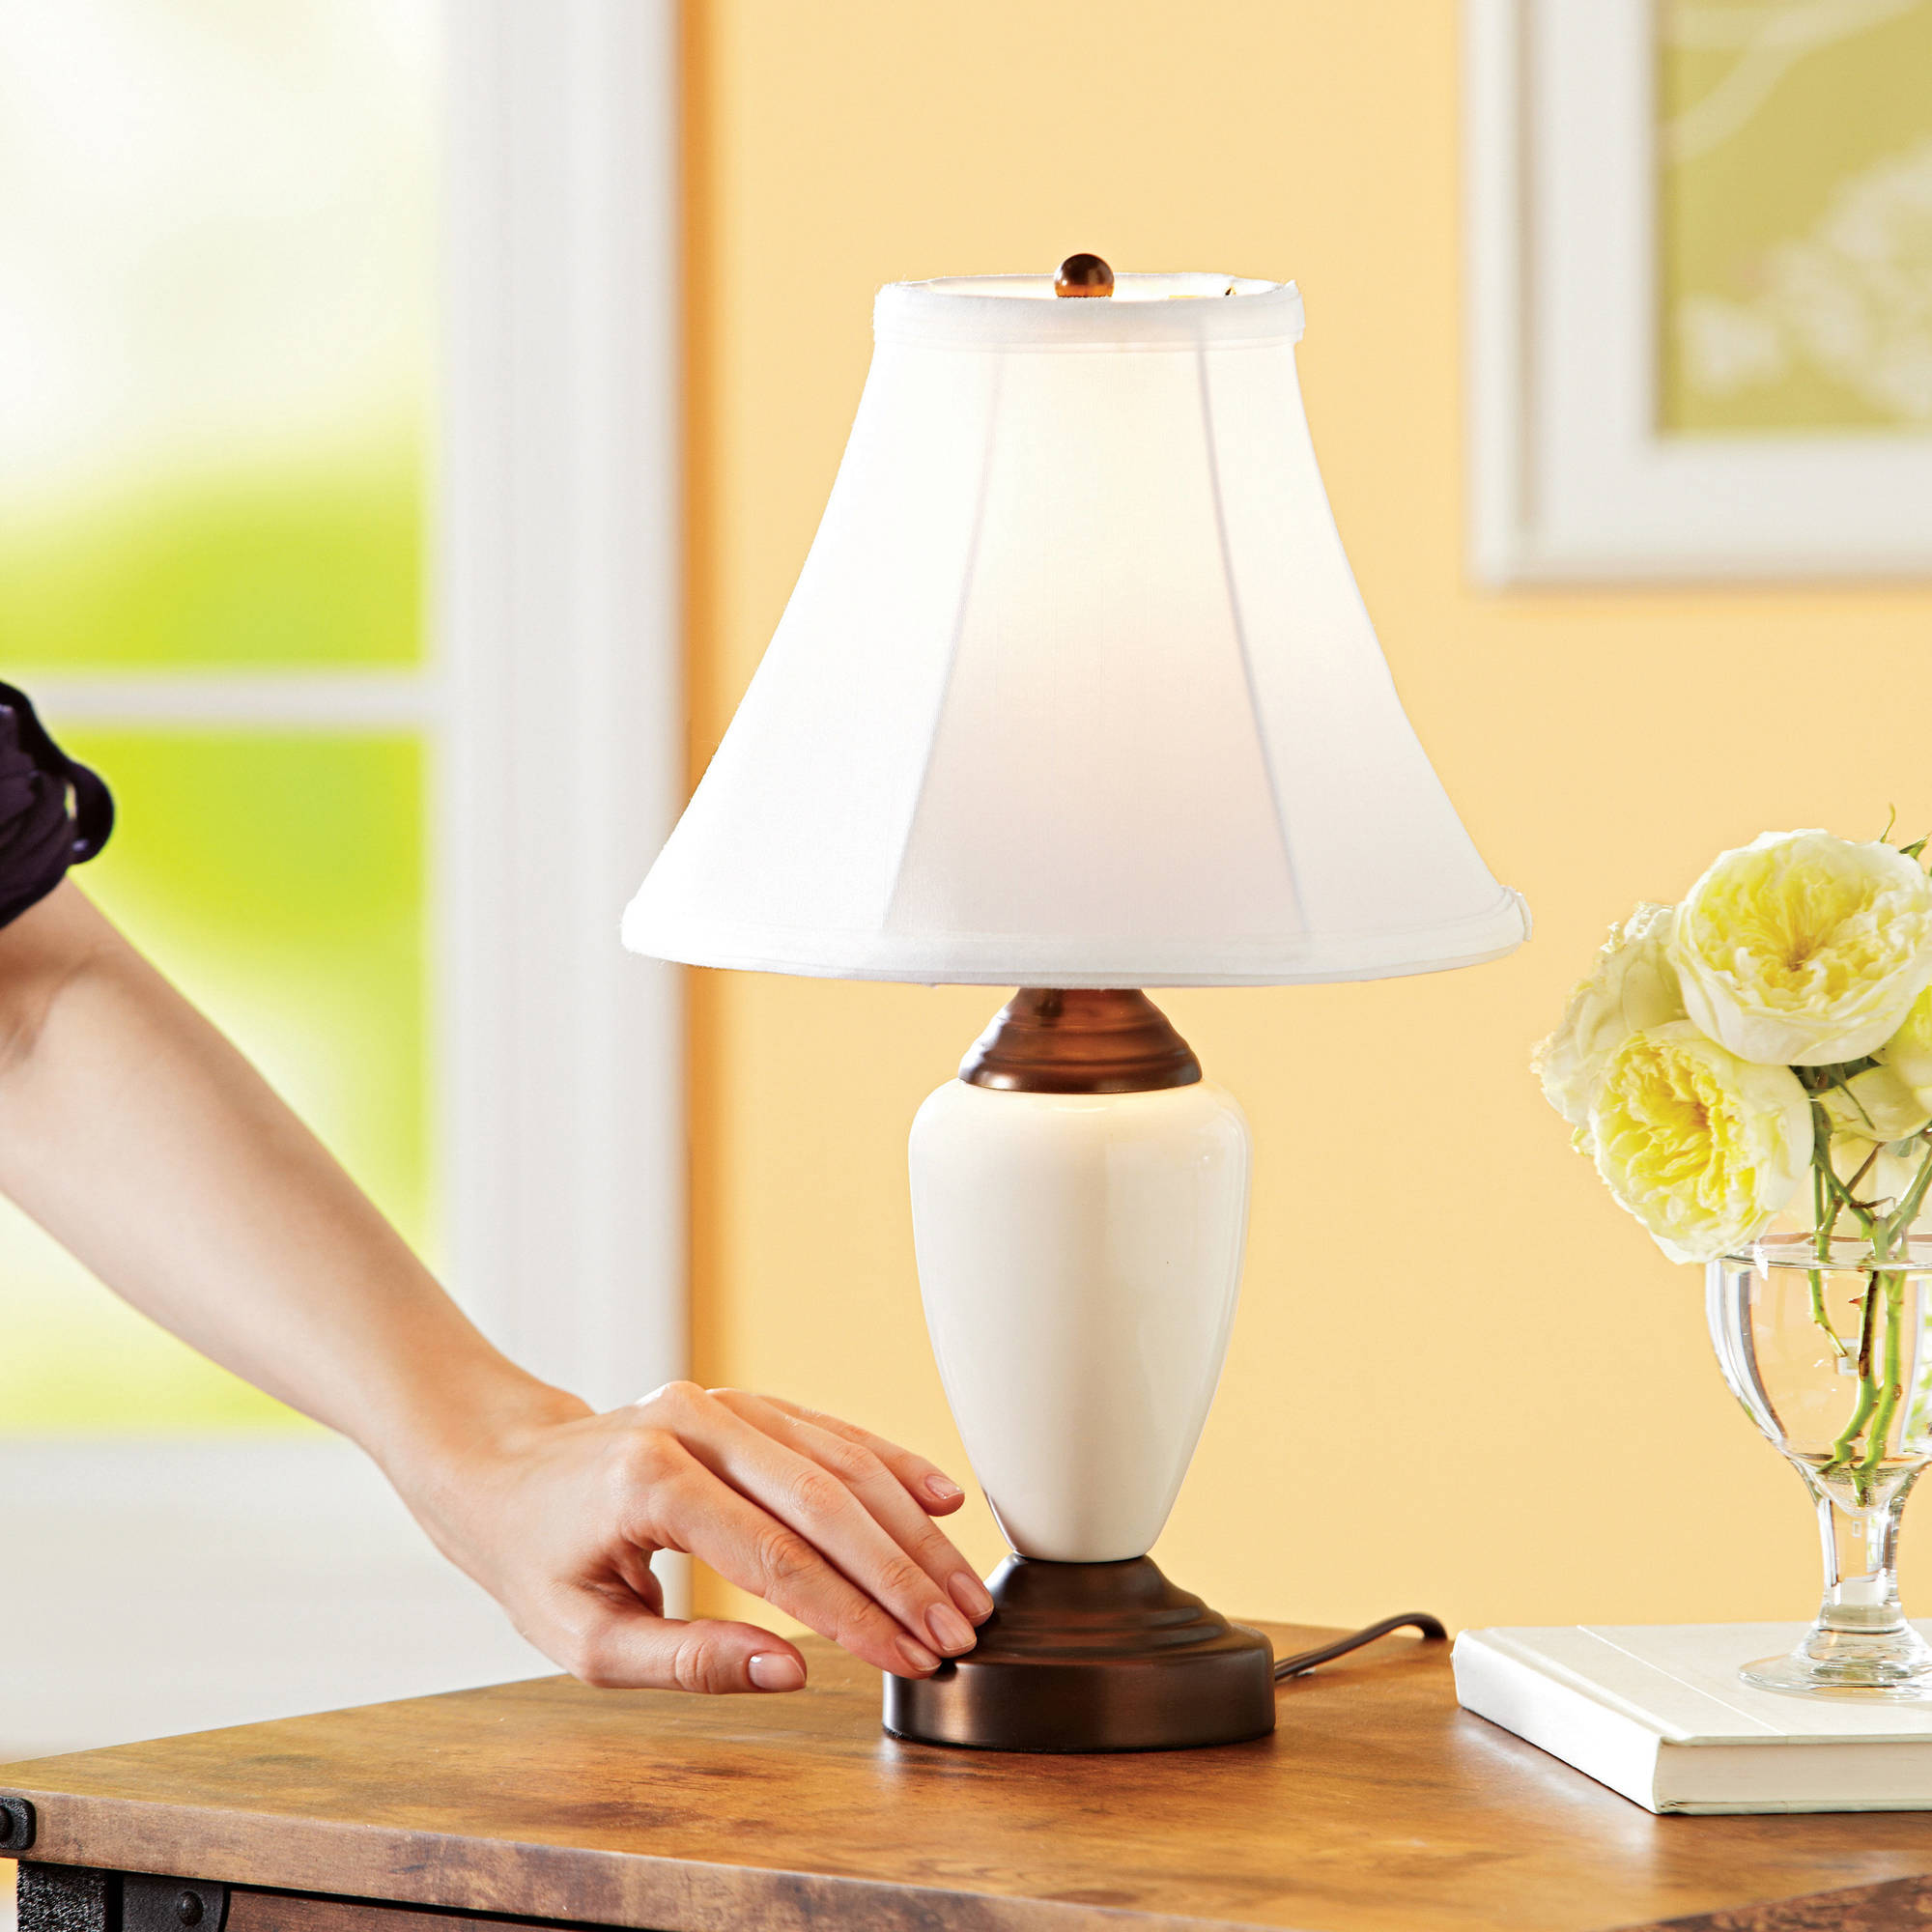 Lamps In The New Design You Can Touch